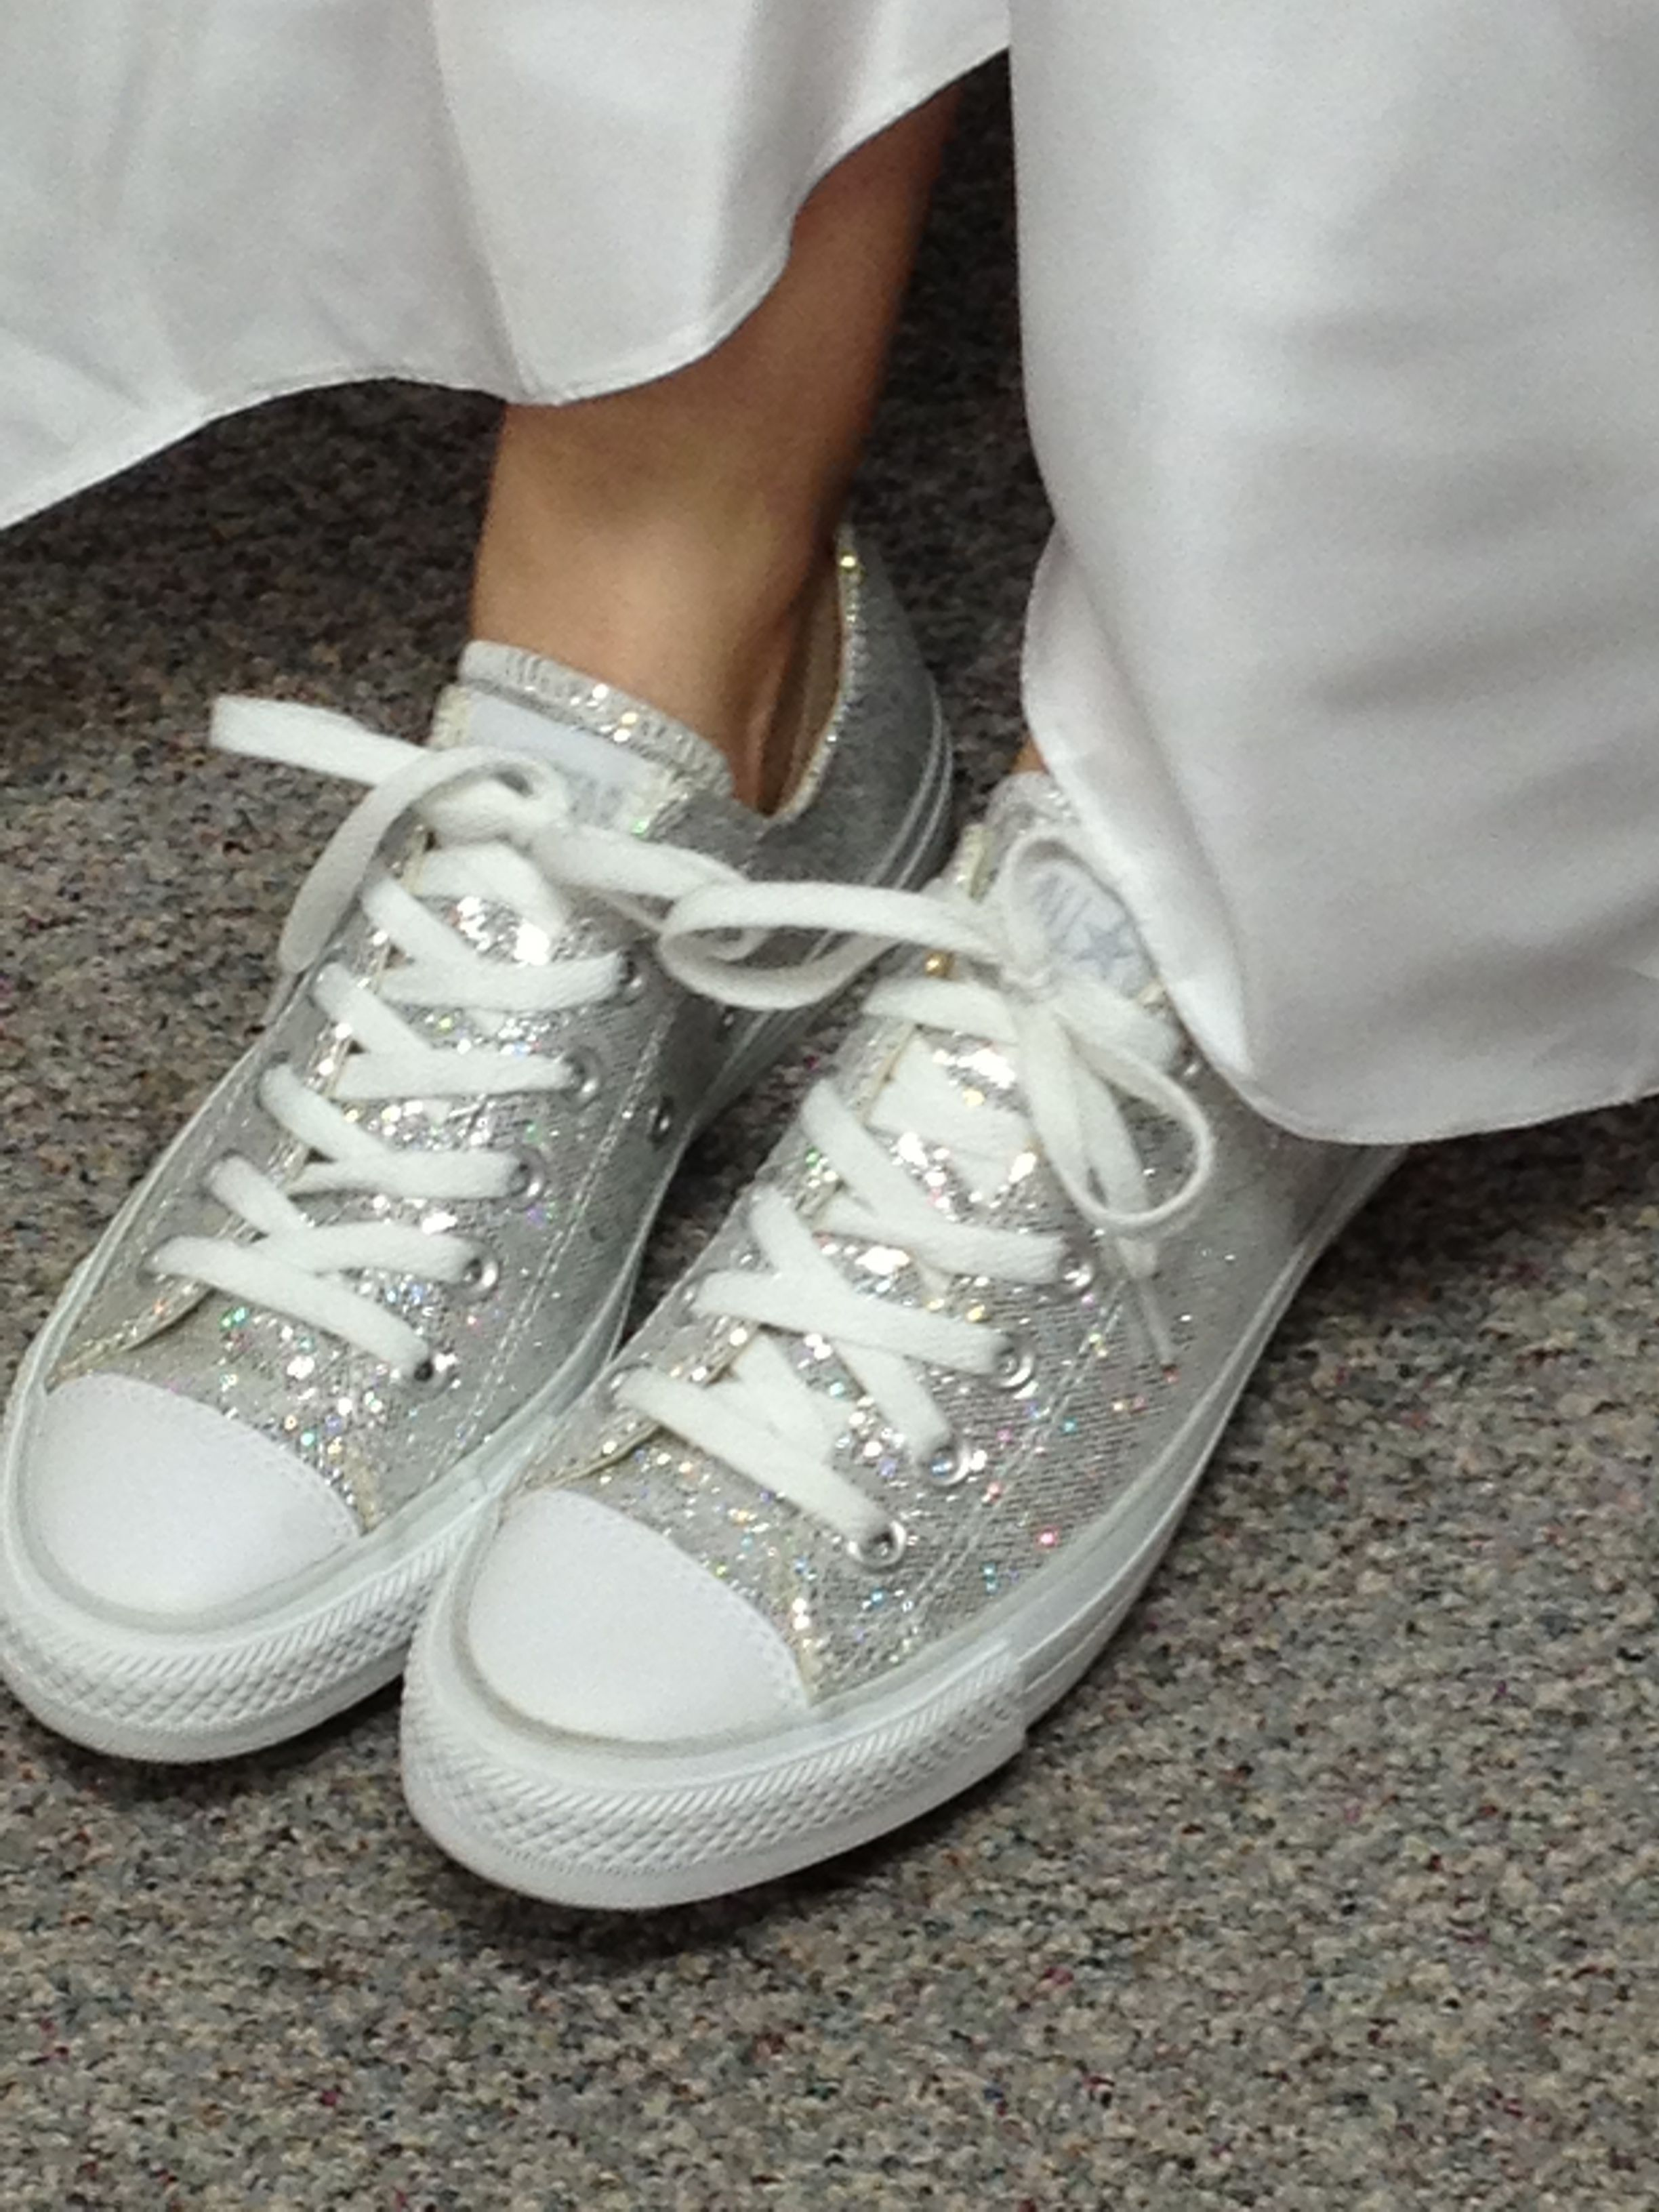 58e01d1c2dee0d Sparkly converse with wedding dress! I know youve got your gray and pink  ones but check these babies out!!